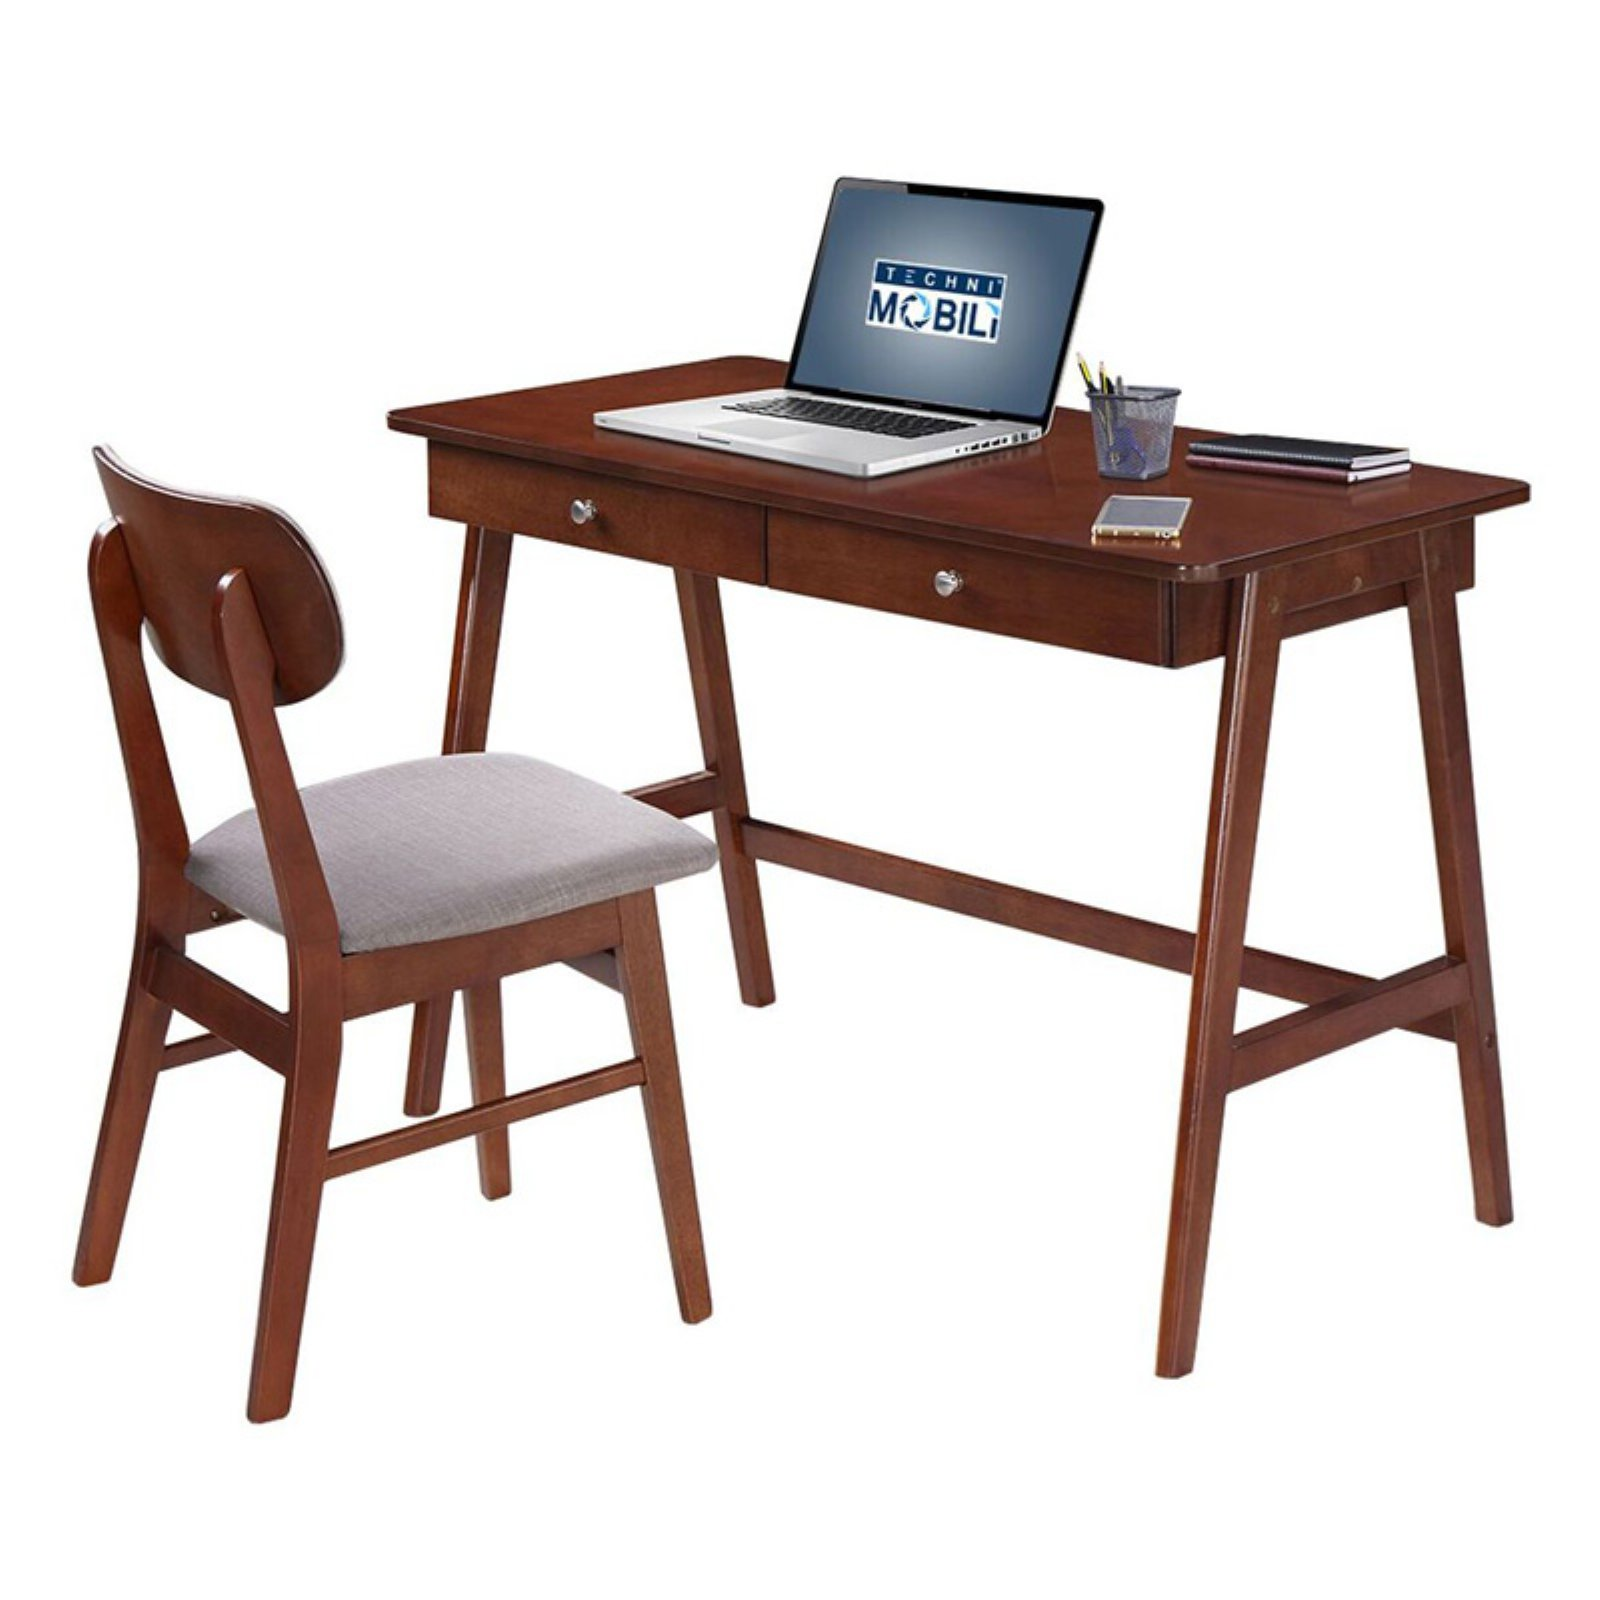 Techni Mobili Modern Desk With Storage And Chair Set. Colors: Mahogany,Gray